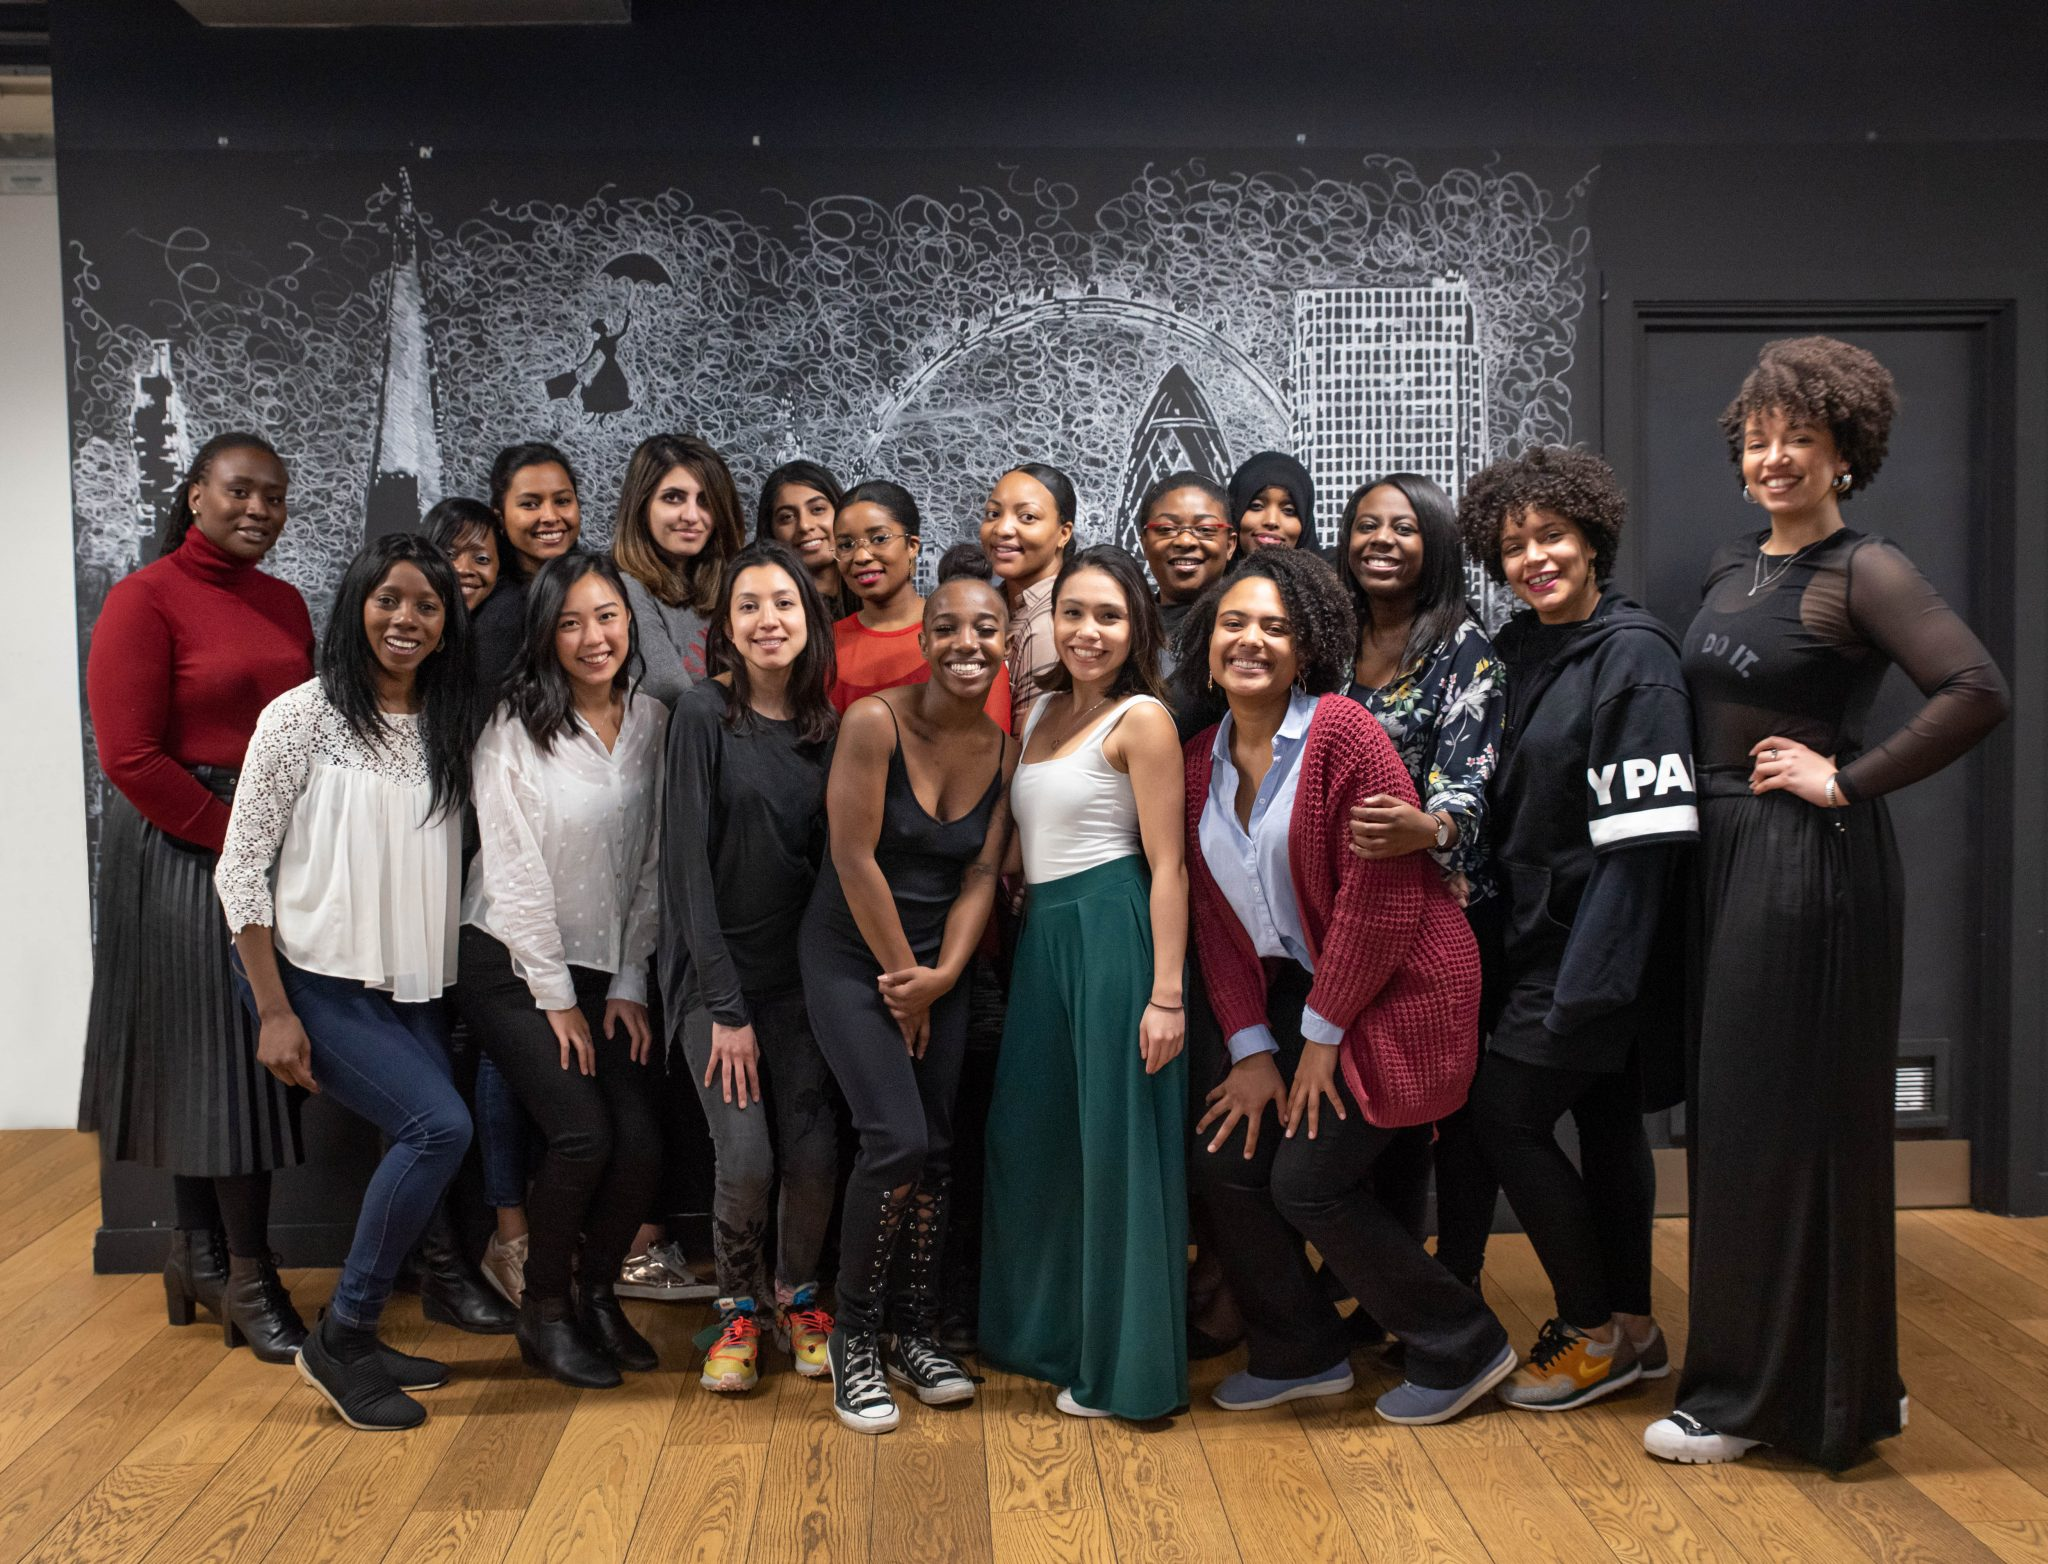 Hatch's 8th female founder cohort, Feb 2020 accelerator